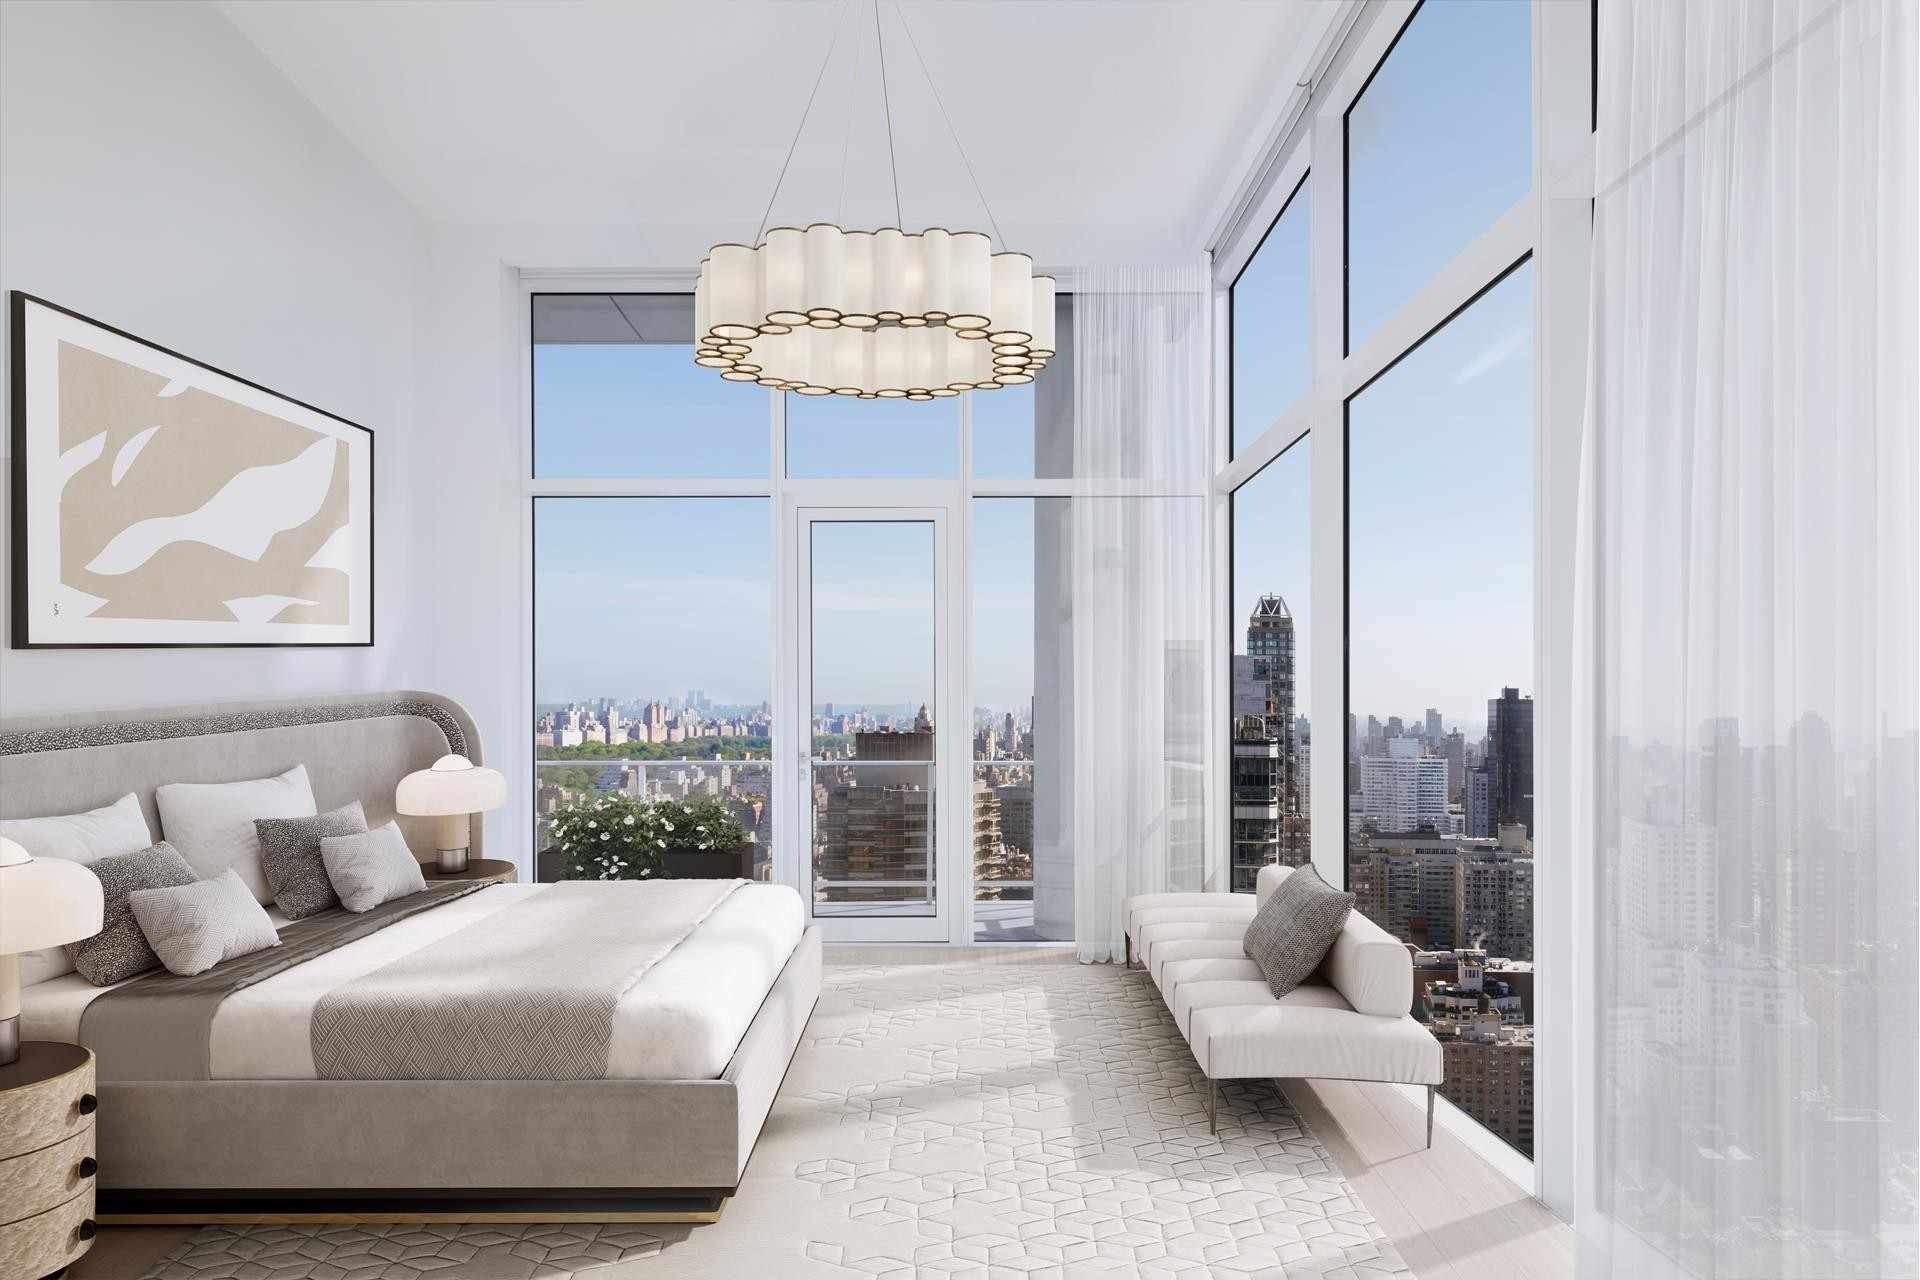 4. Condominiums for Sale at 200 East 59th St, PH33 Midtown Manhattan, New York, NY 10022